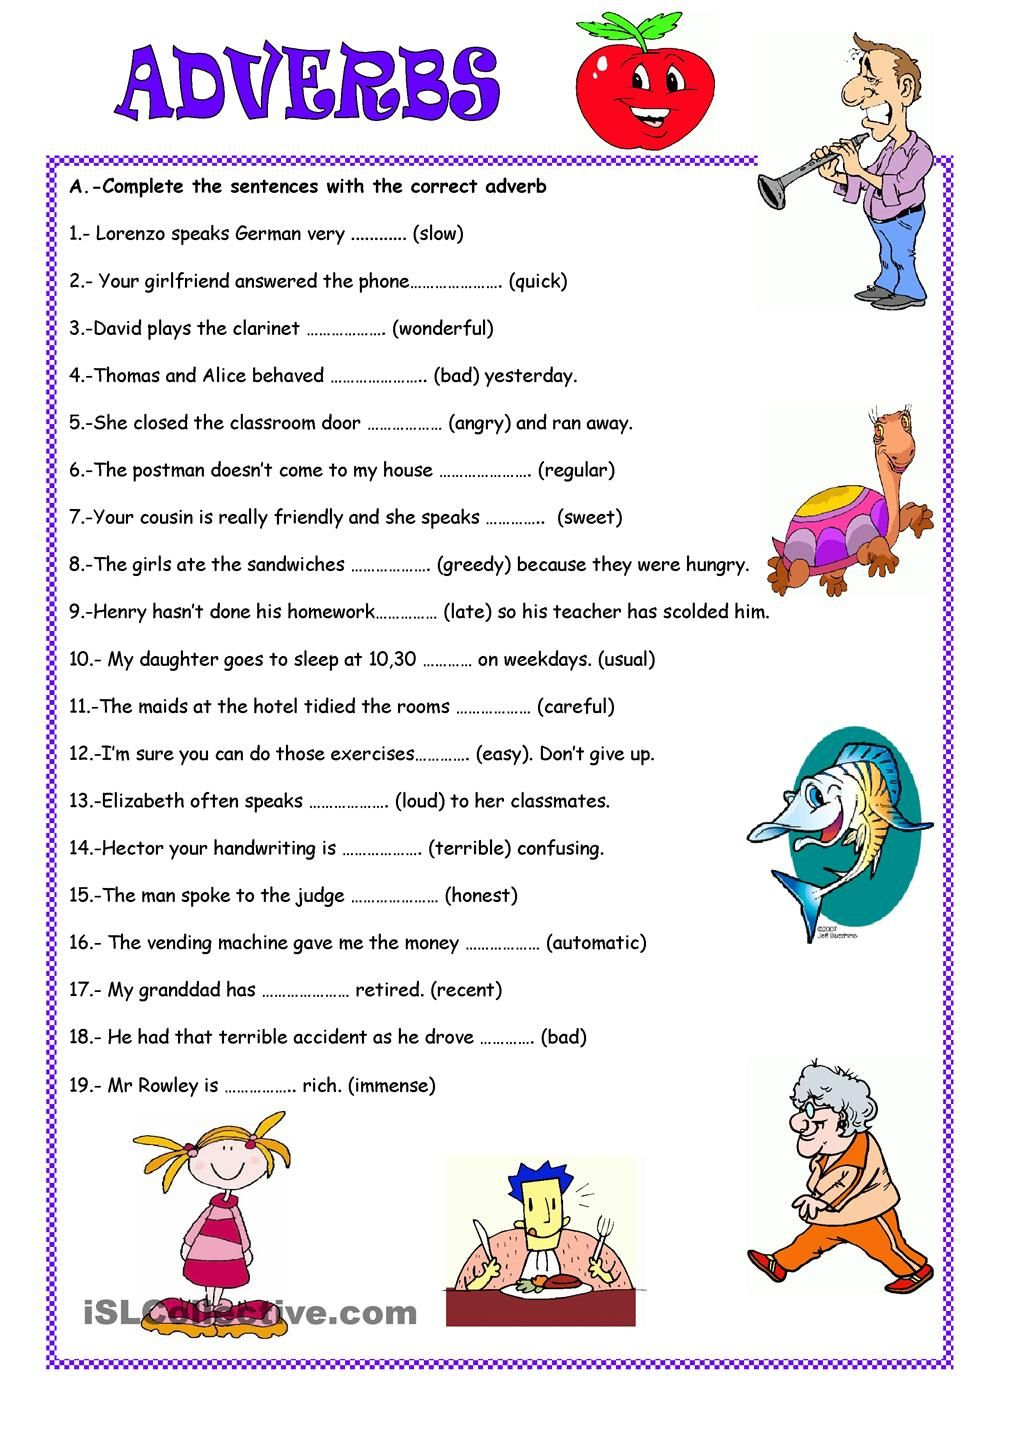 Workbooks worksheets on kinds of adverbs : adverbs worksheet - Google Search | safa | Pinterest | Adverbs ...